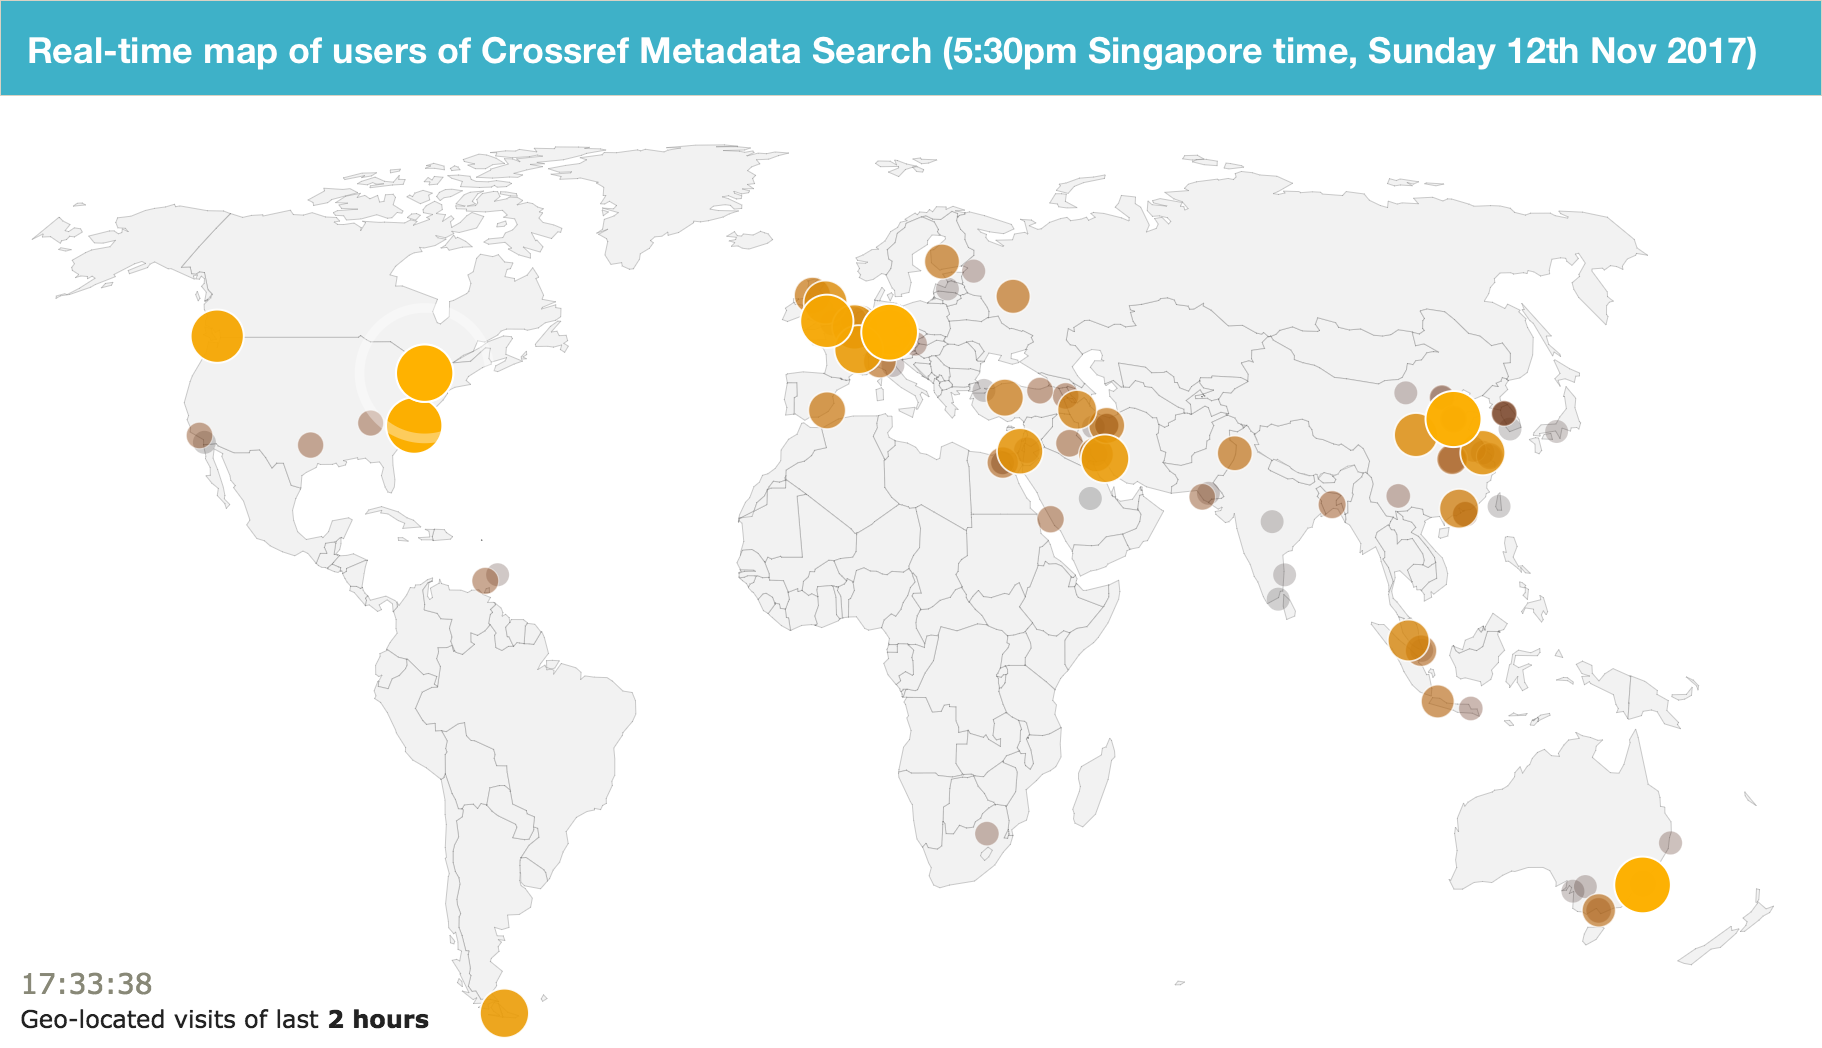 World map of current metadata search users